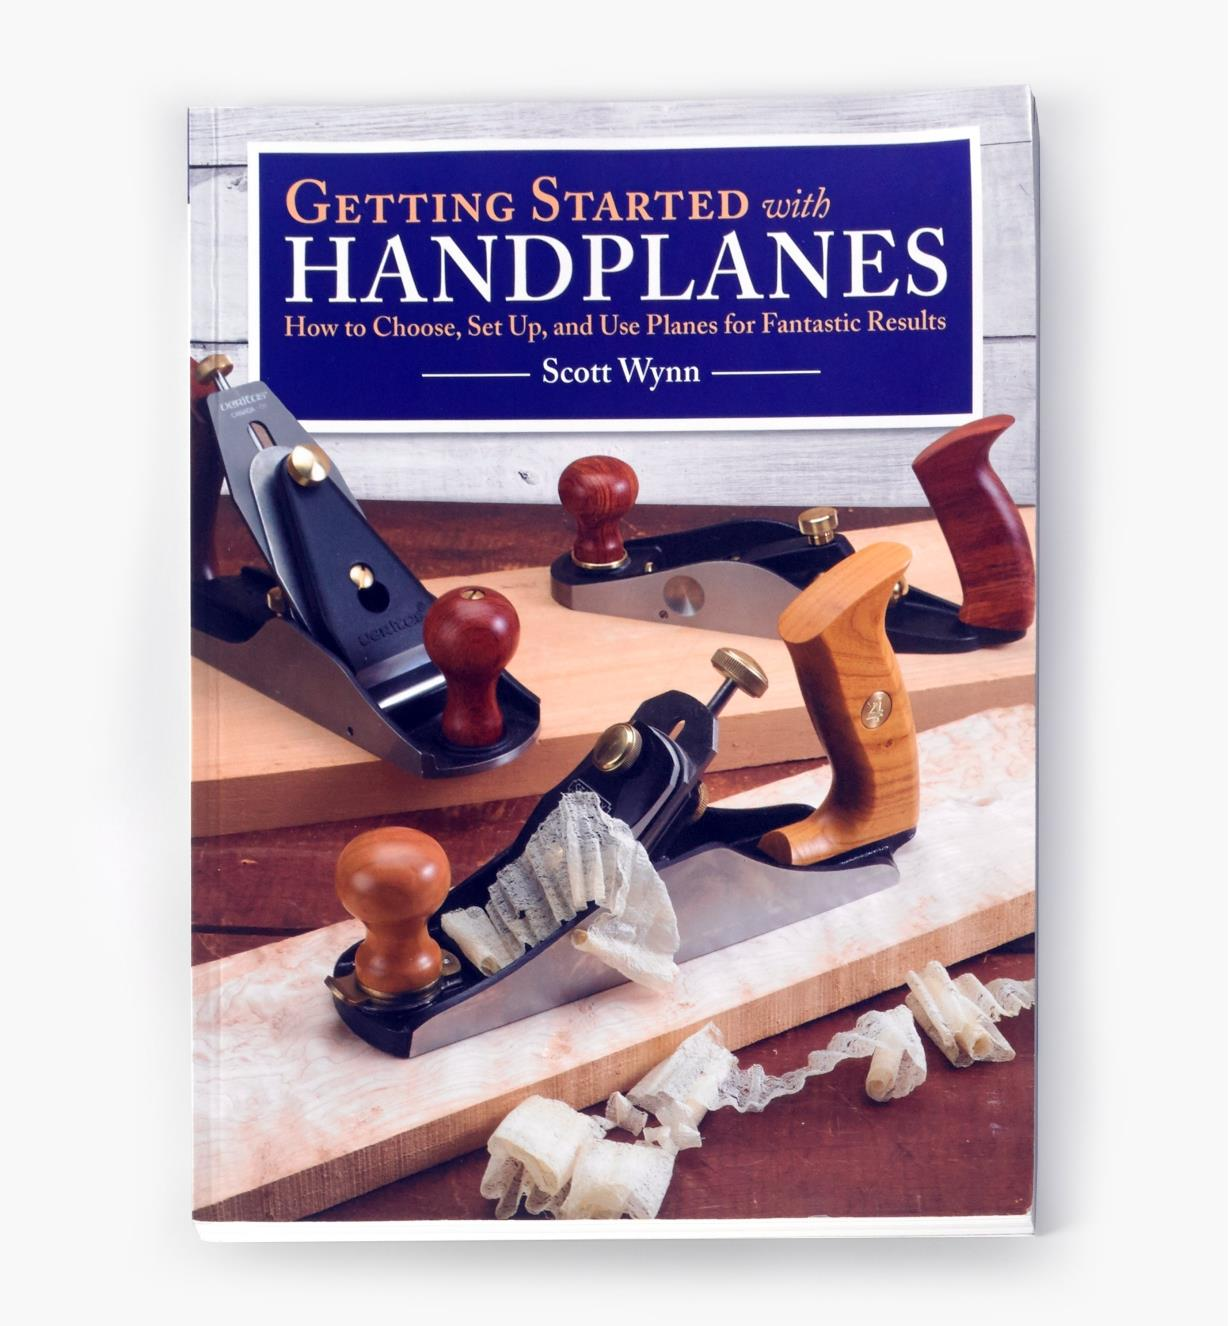 49L5126 - Getting Started with Handplanes